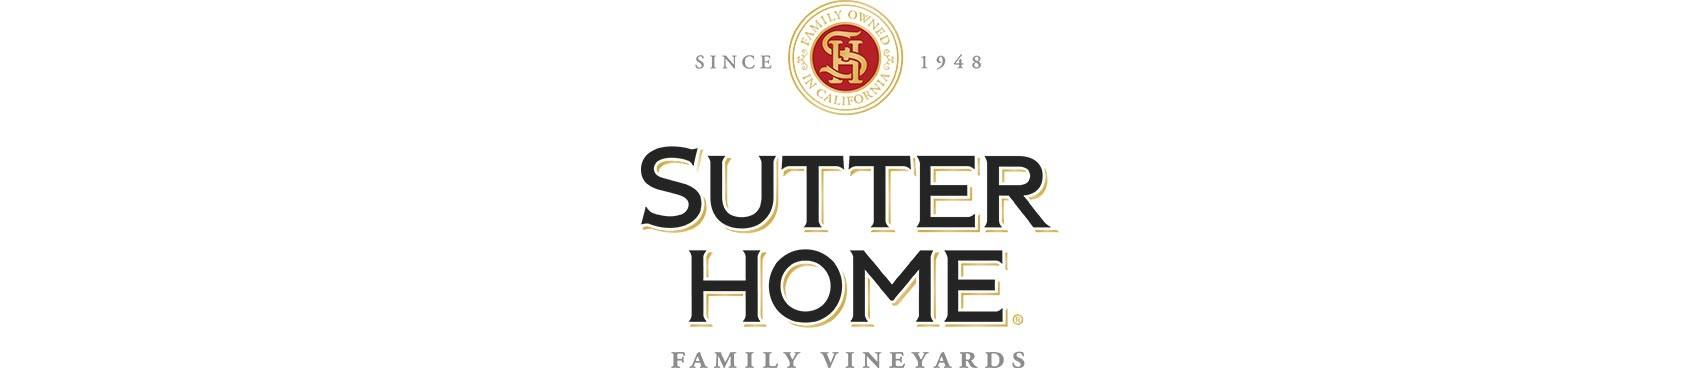 Sutter Home Winery